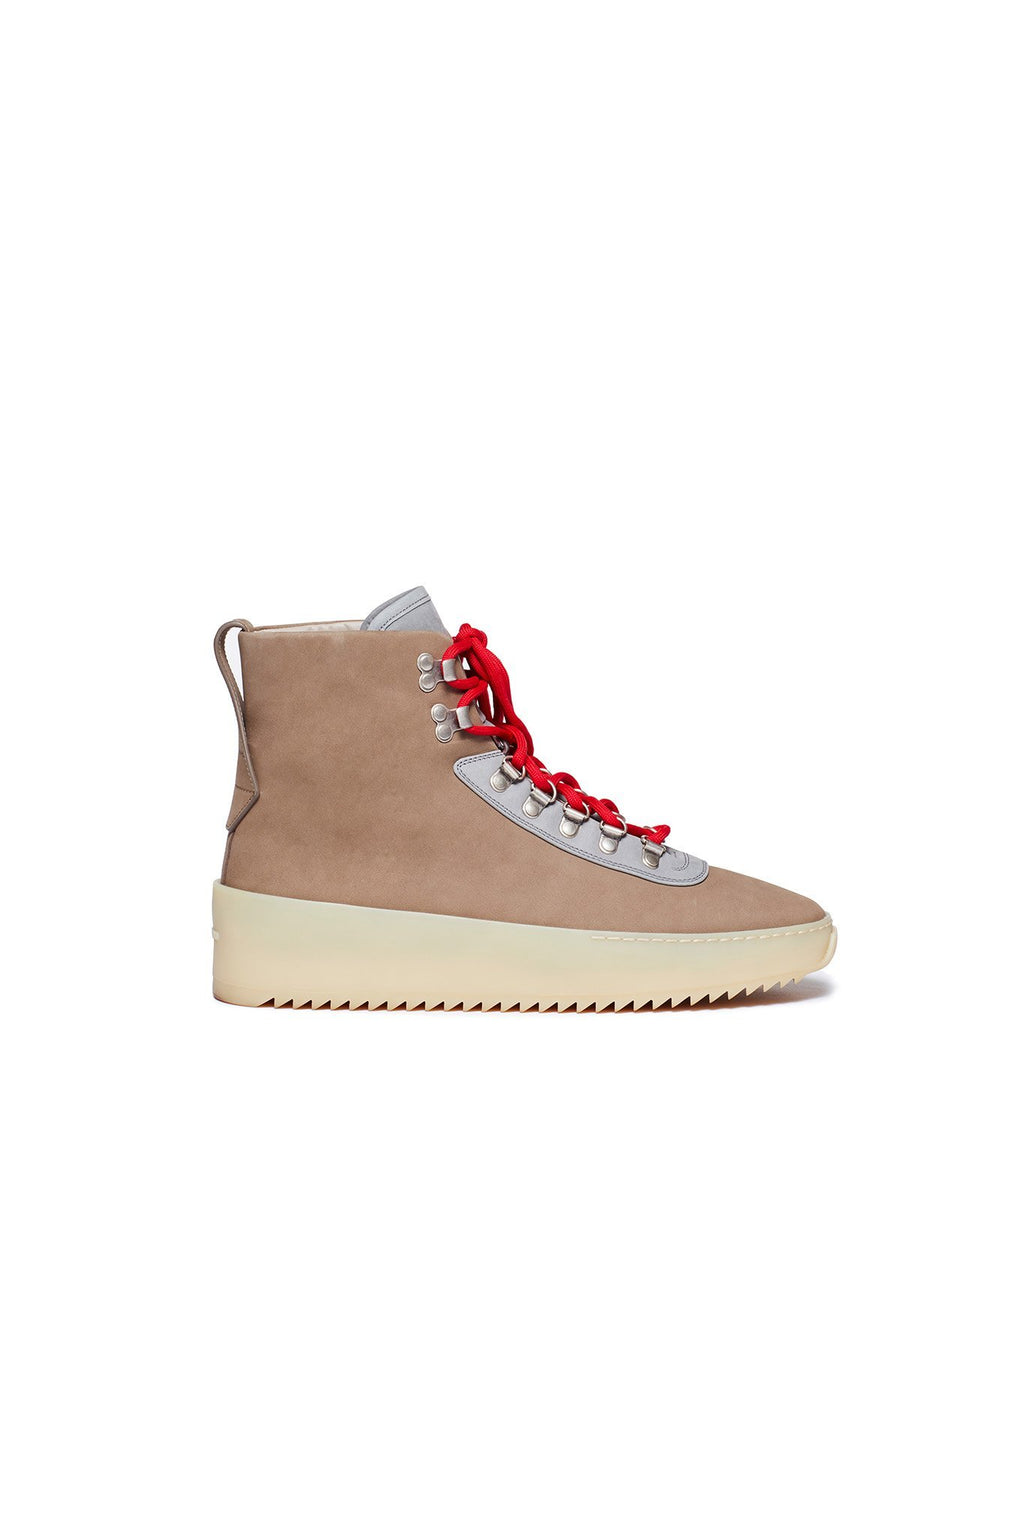 Almond Butter / Paris Sky Grey / Gum Hiking Sneaker